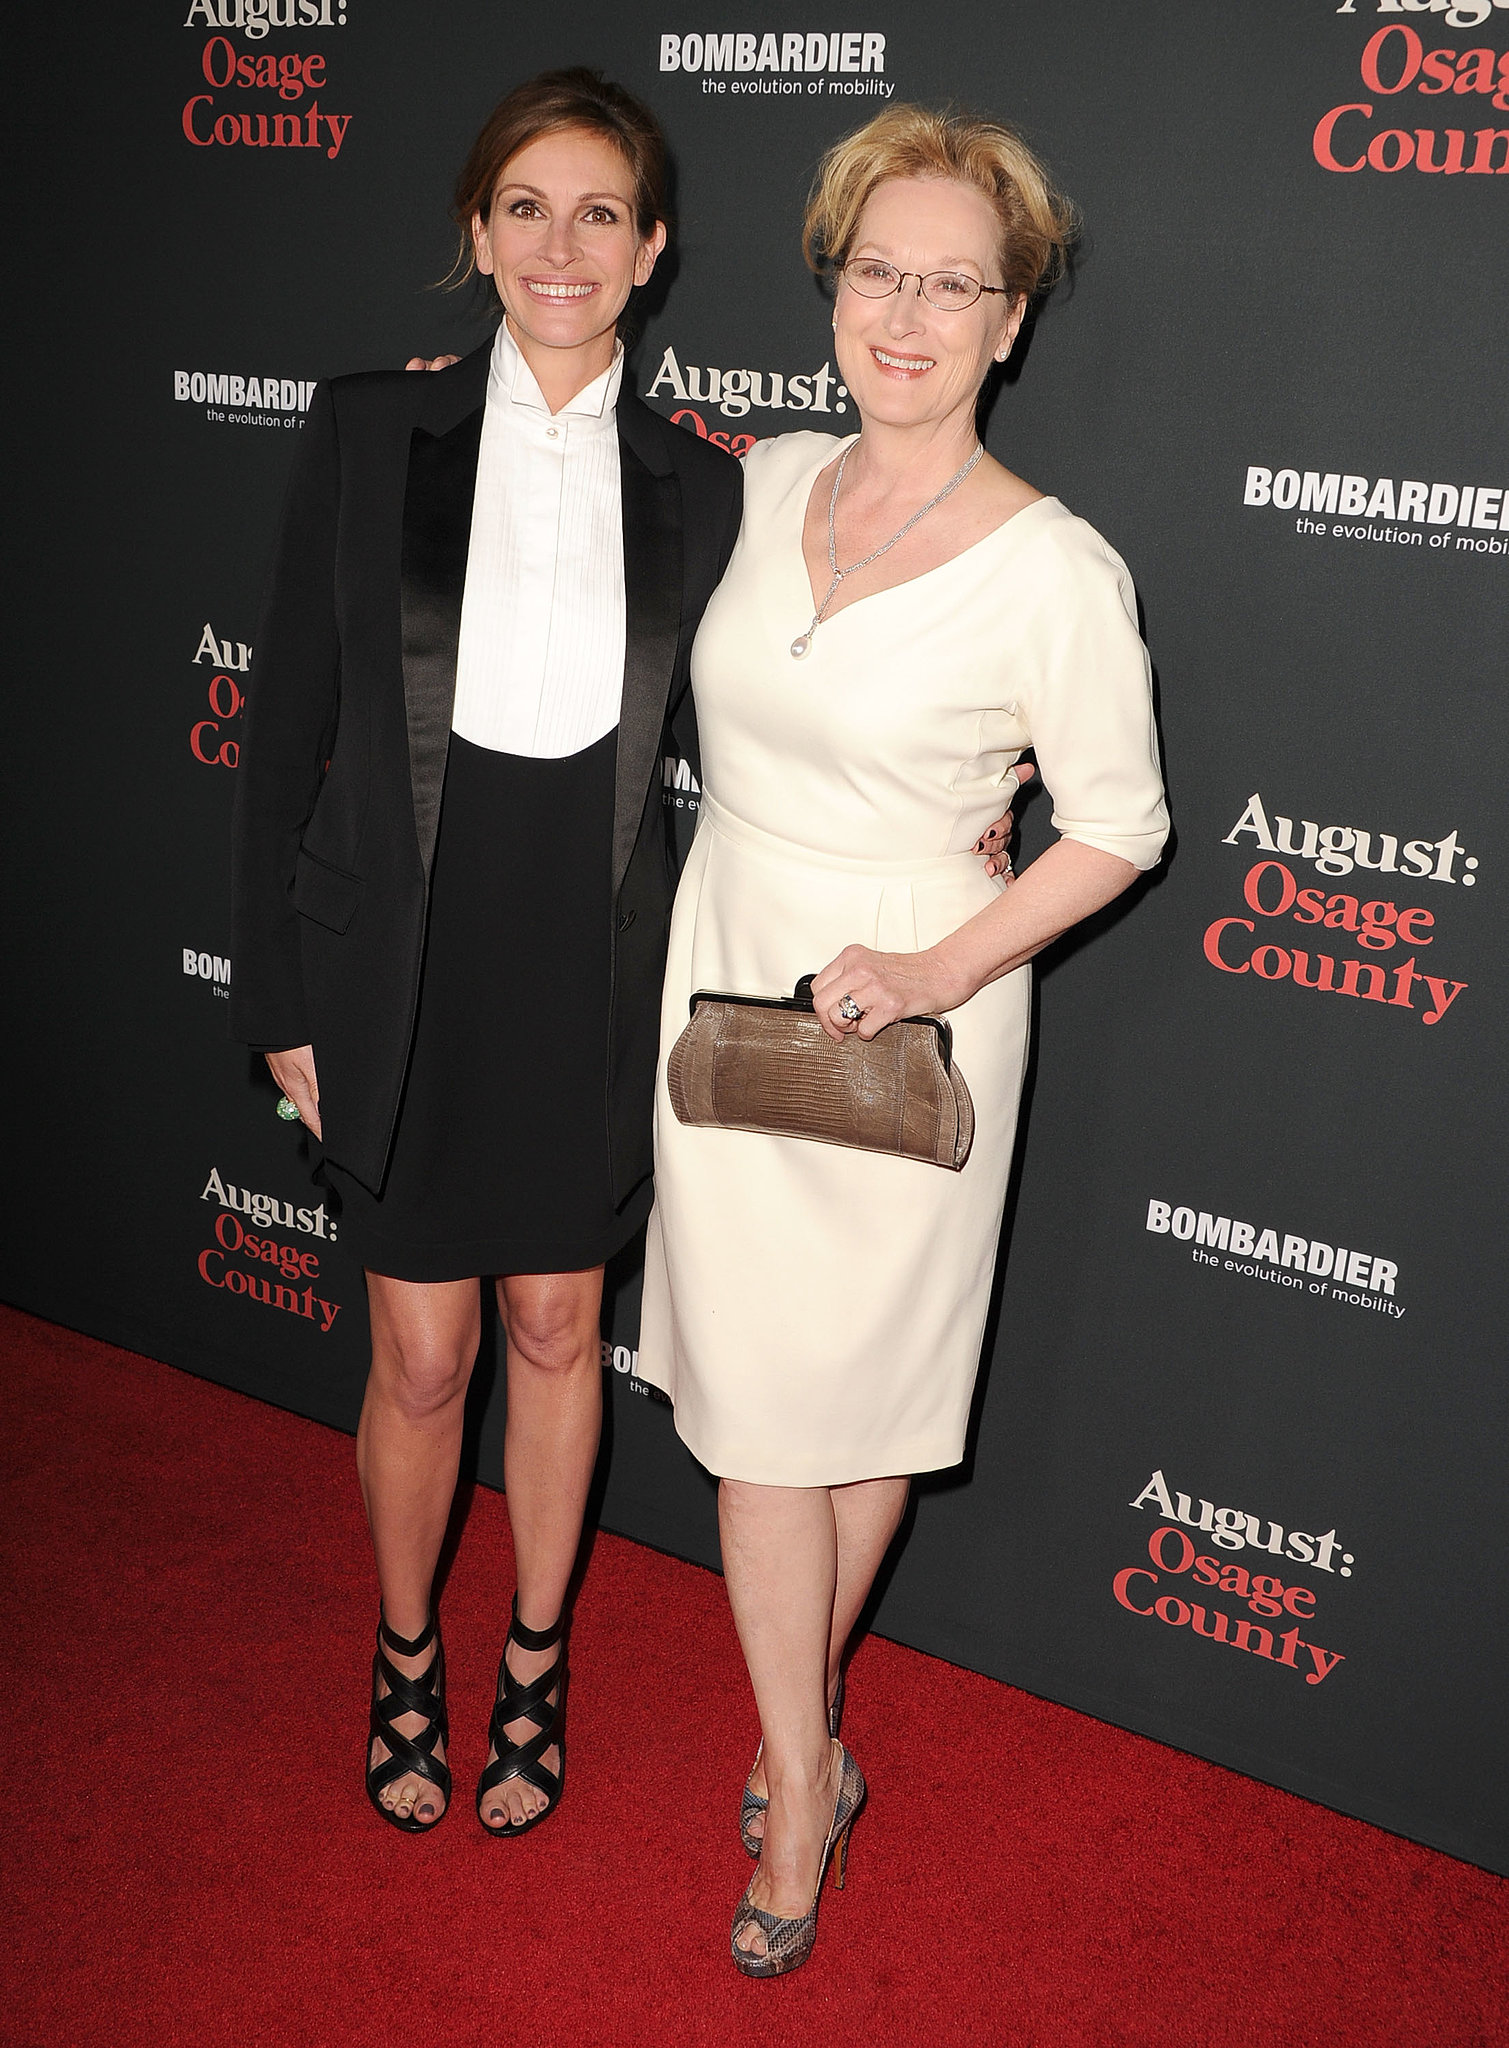 Julia Roberts and Meryl Streep hit the red carpet together for the LA premiere of their film August: Osage County.